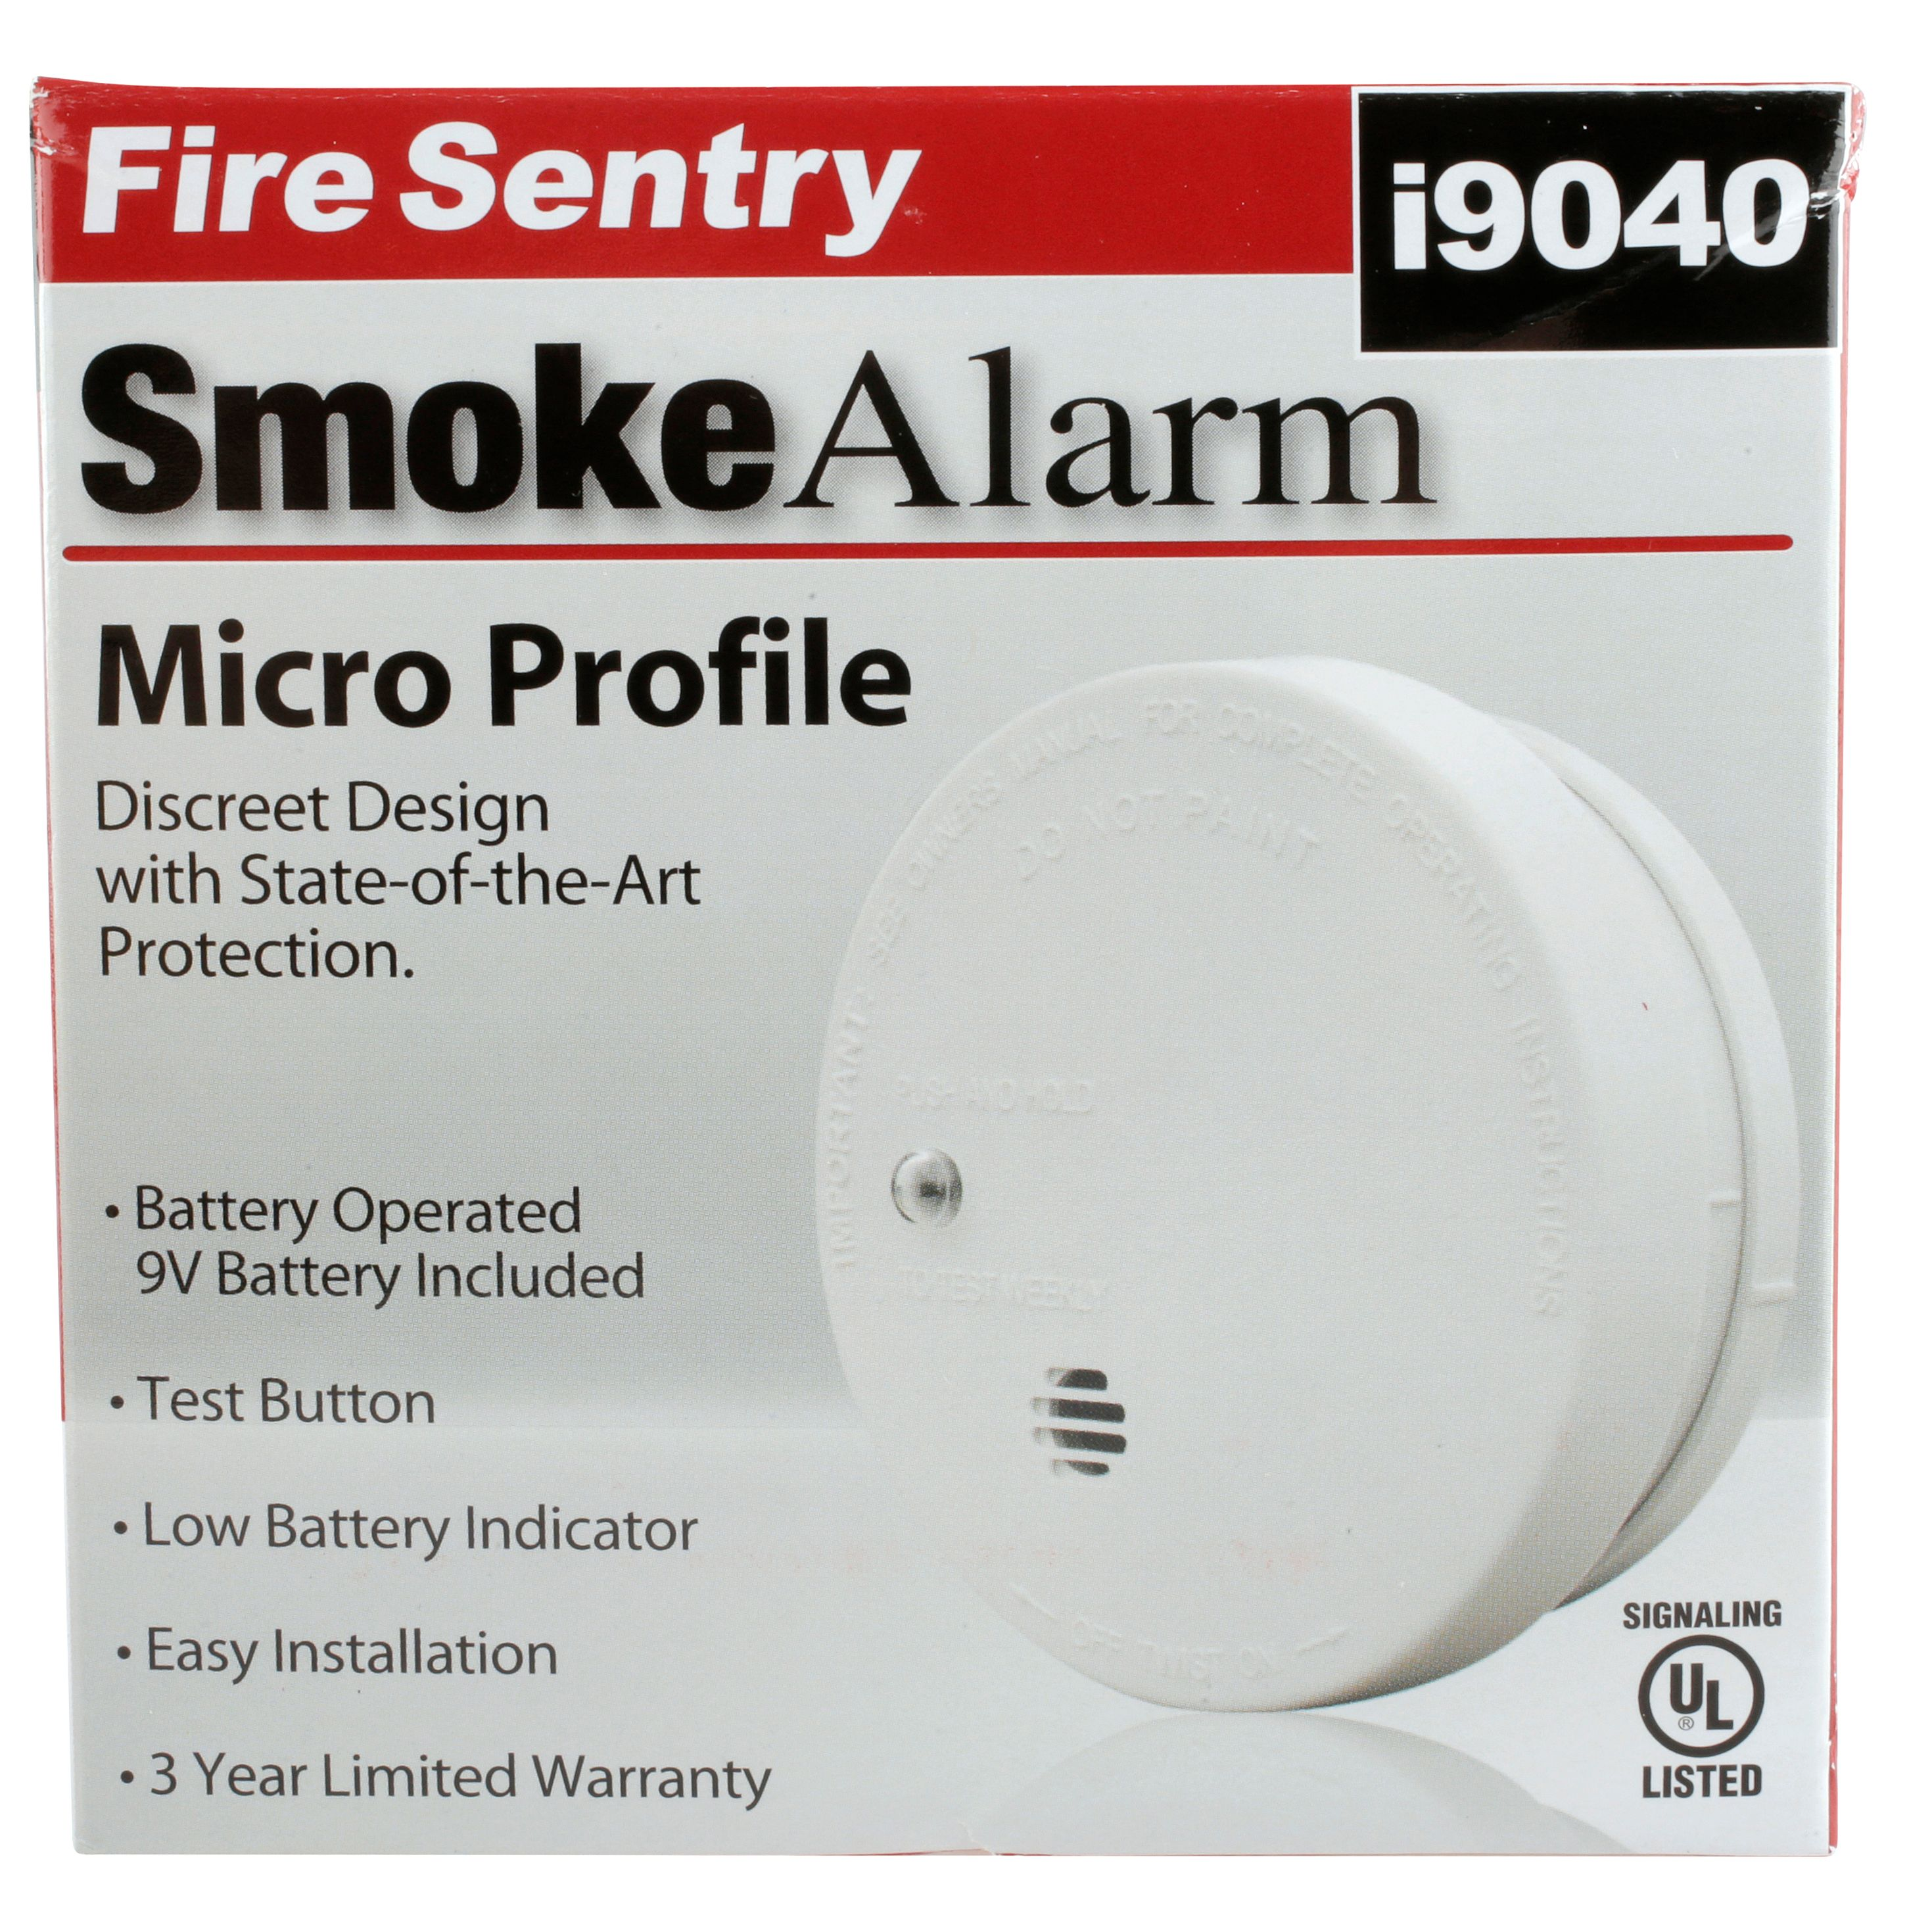 Fire Sentry Smoke Alarm